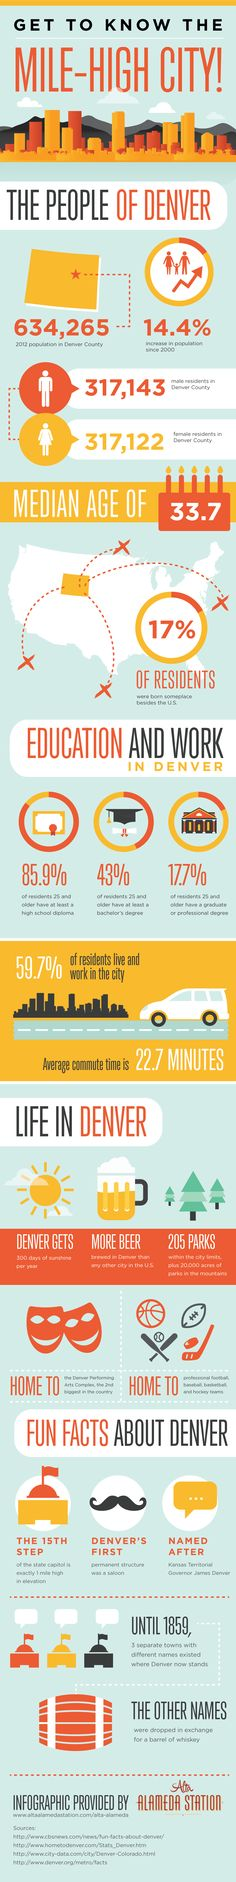 Get to Know the Mile-High City!   #Infographic #Travel #Denver